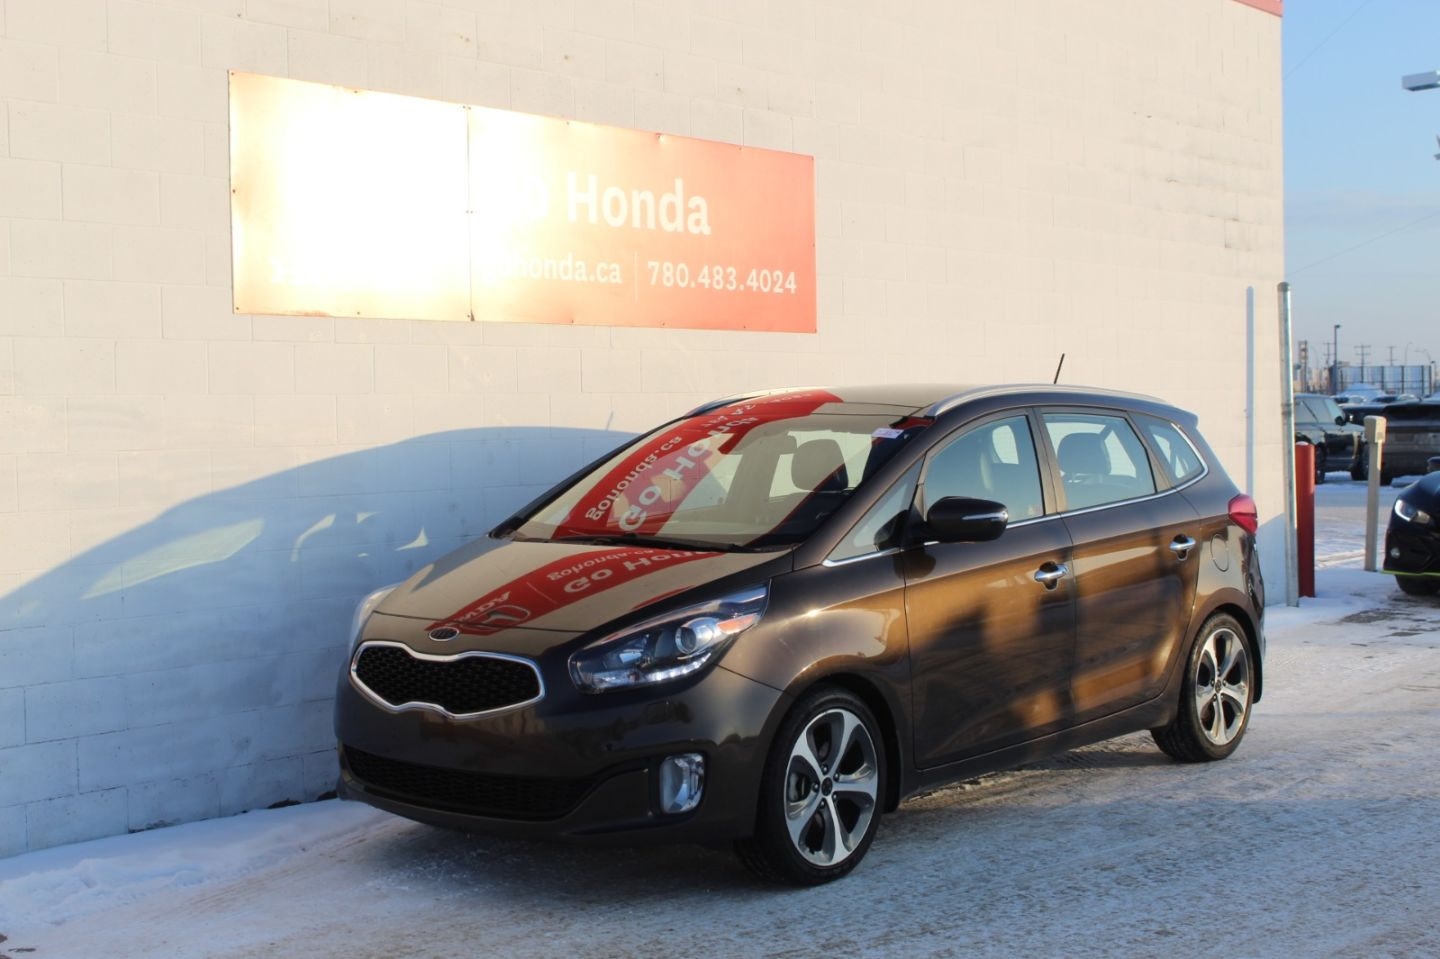 2014 Kia Rondo EX Luxury for sale in Edmonton, Alberta